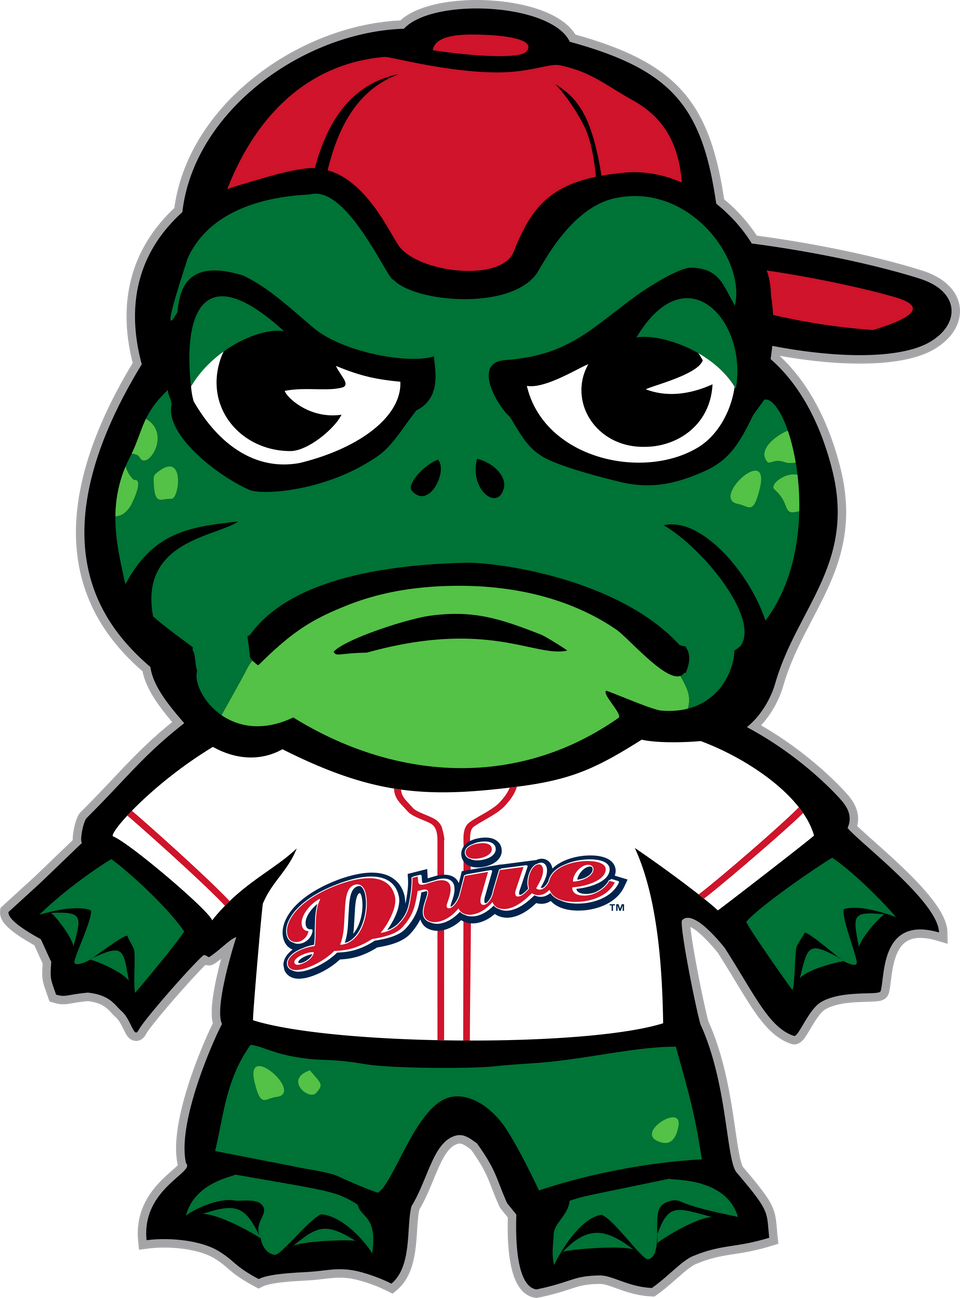 collections/Greenville_Drive.png